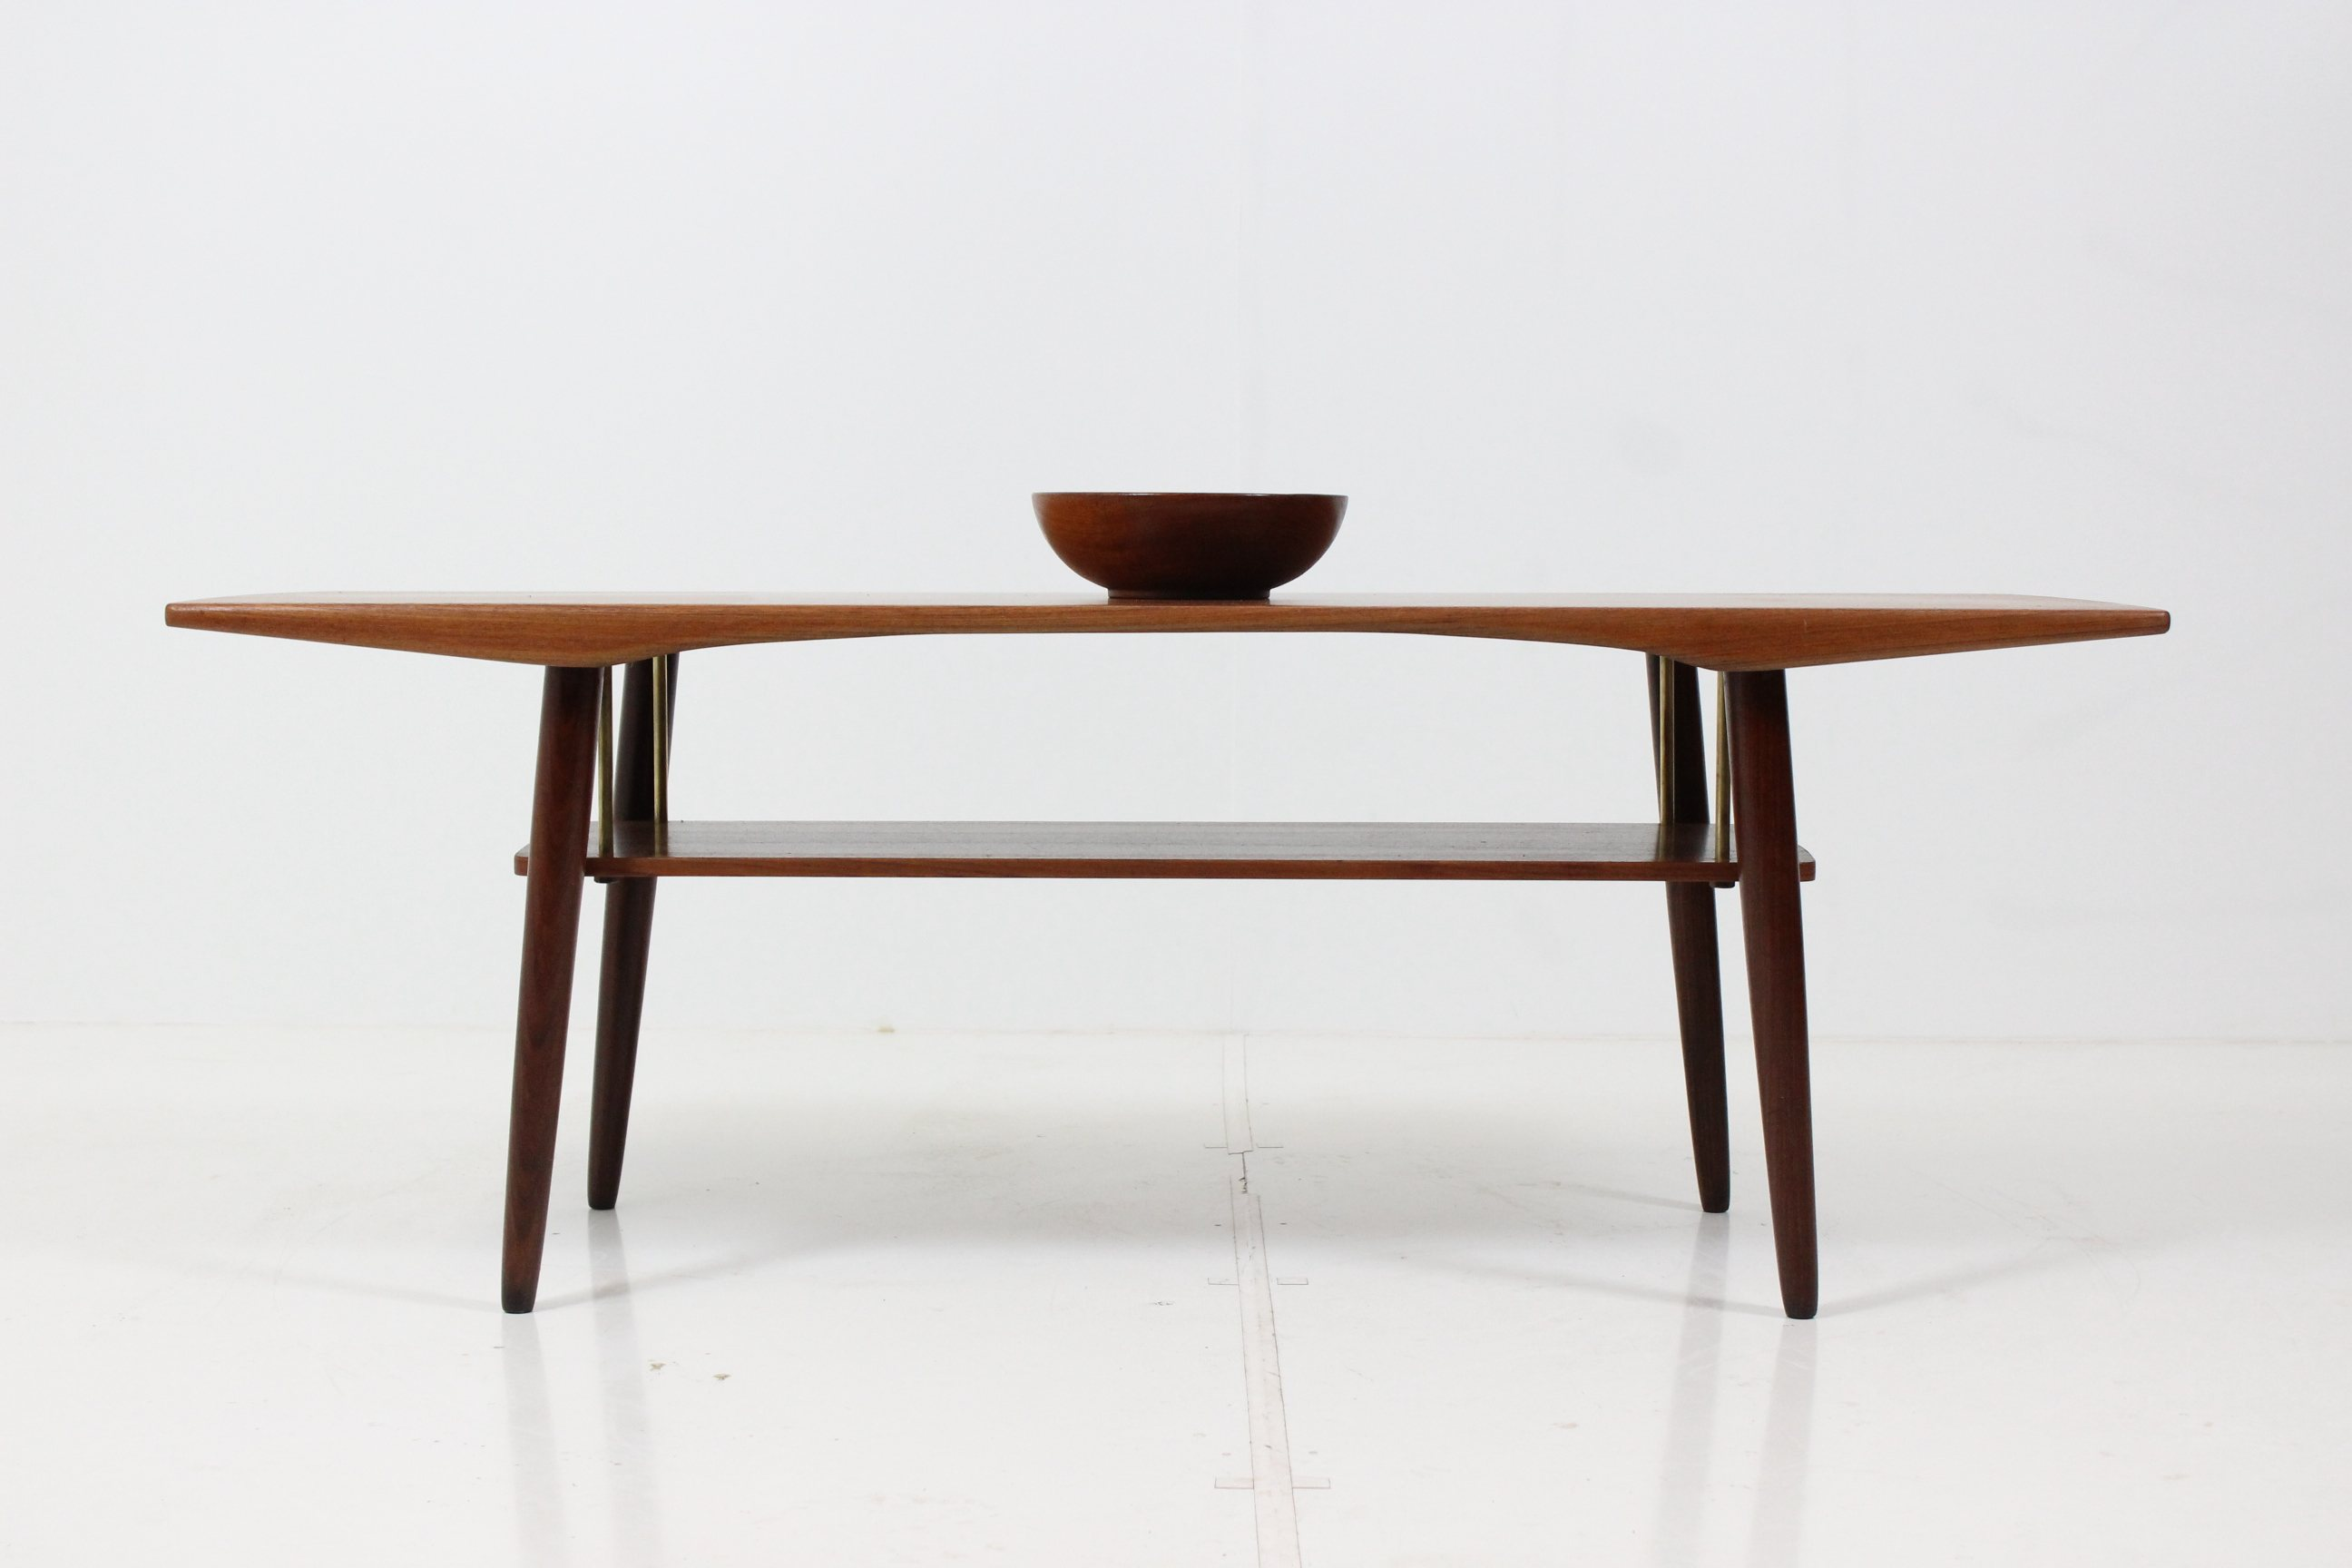 Retro Vintage Organic Shaped Coffee Table in Teak